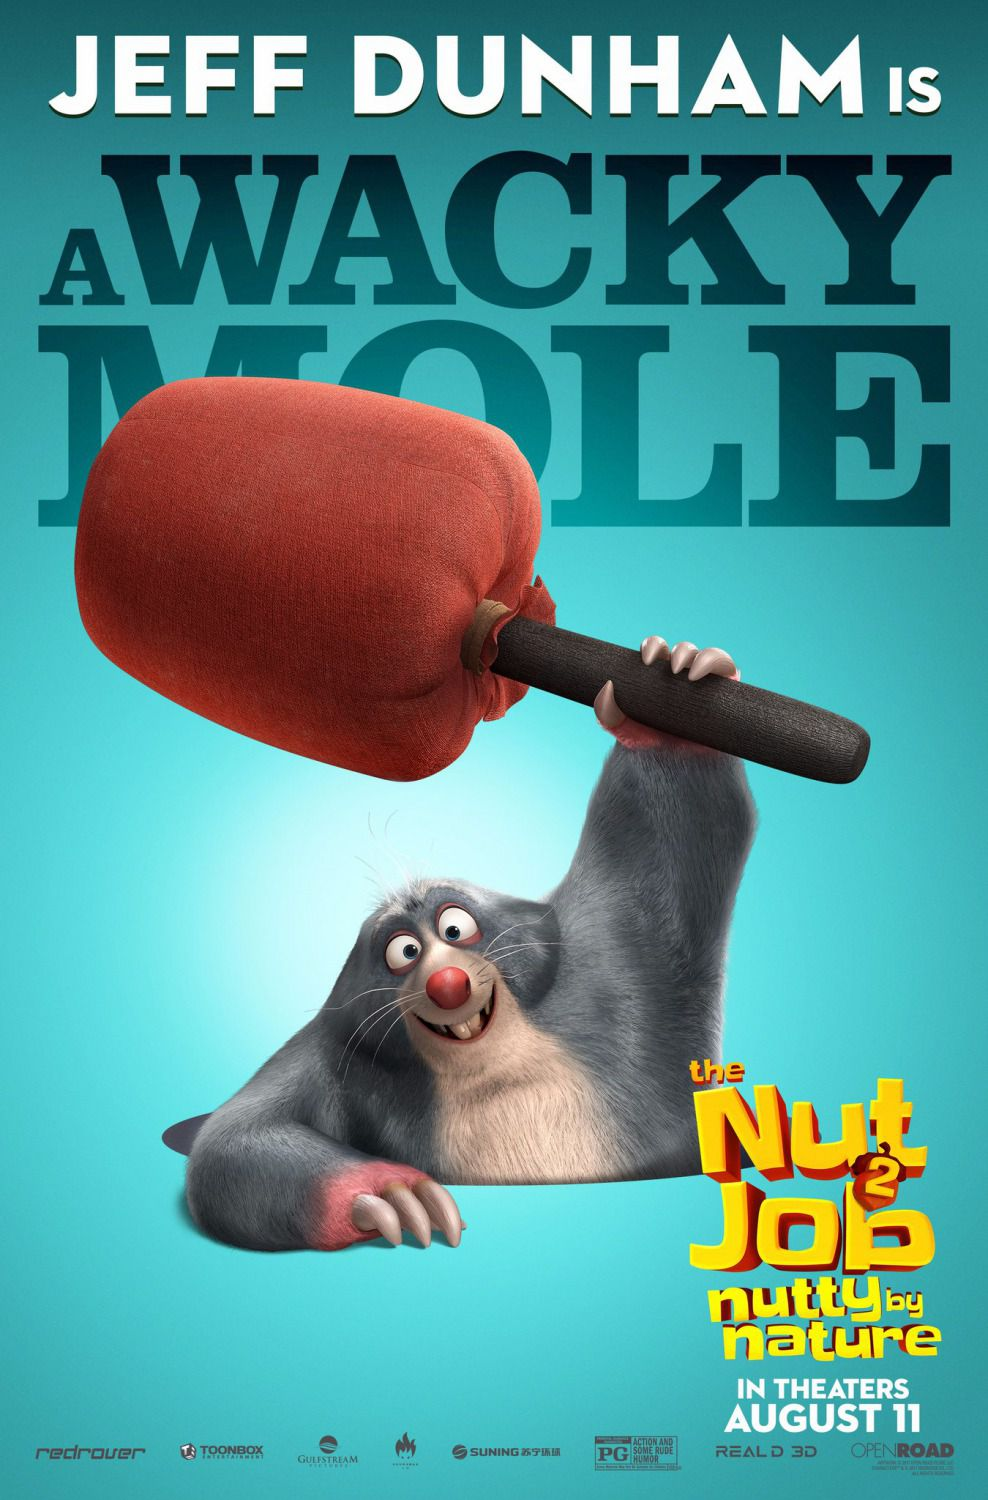 Film - The Nut Job 2 - Operazione Nocciolina 2 - Nutty by Nature - Wacky Mole